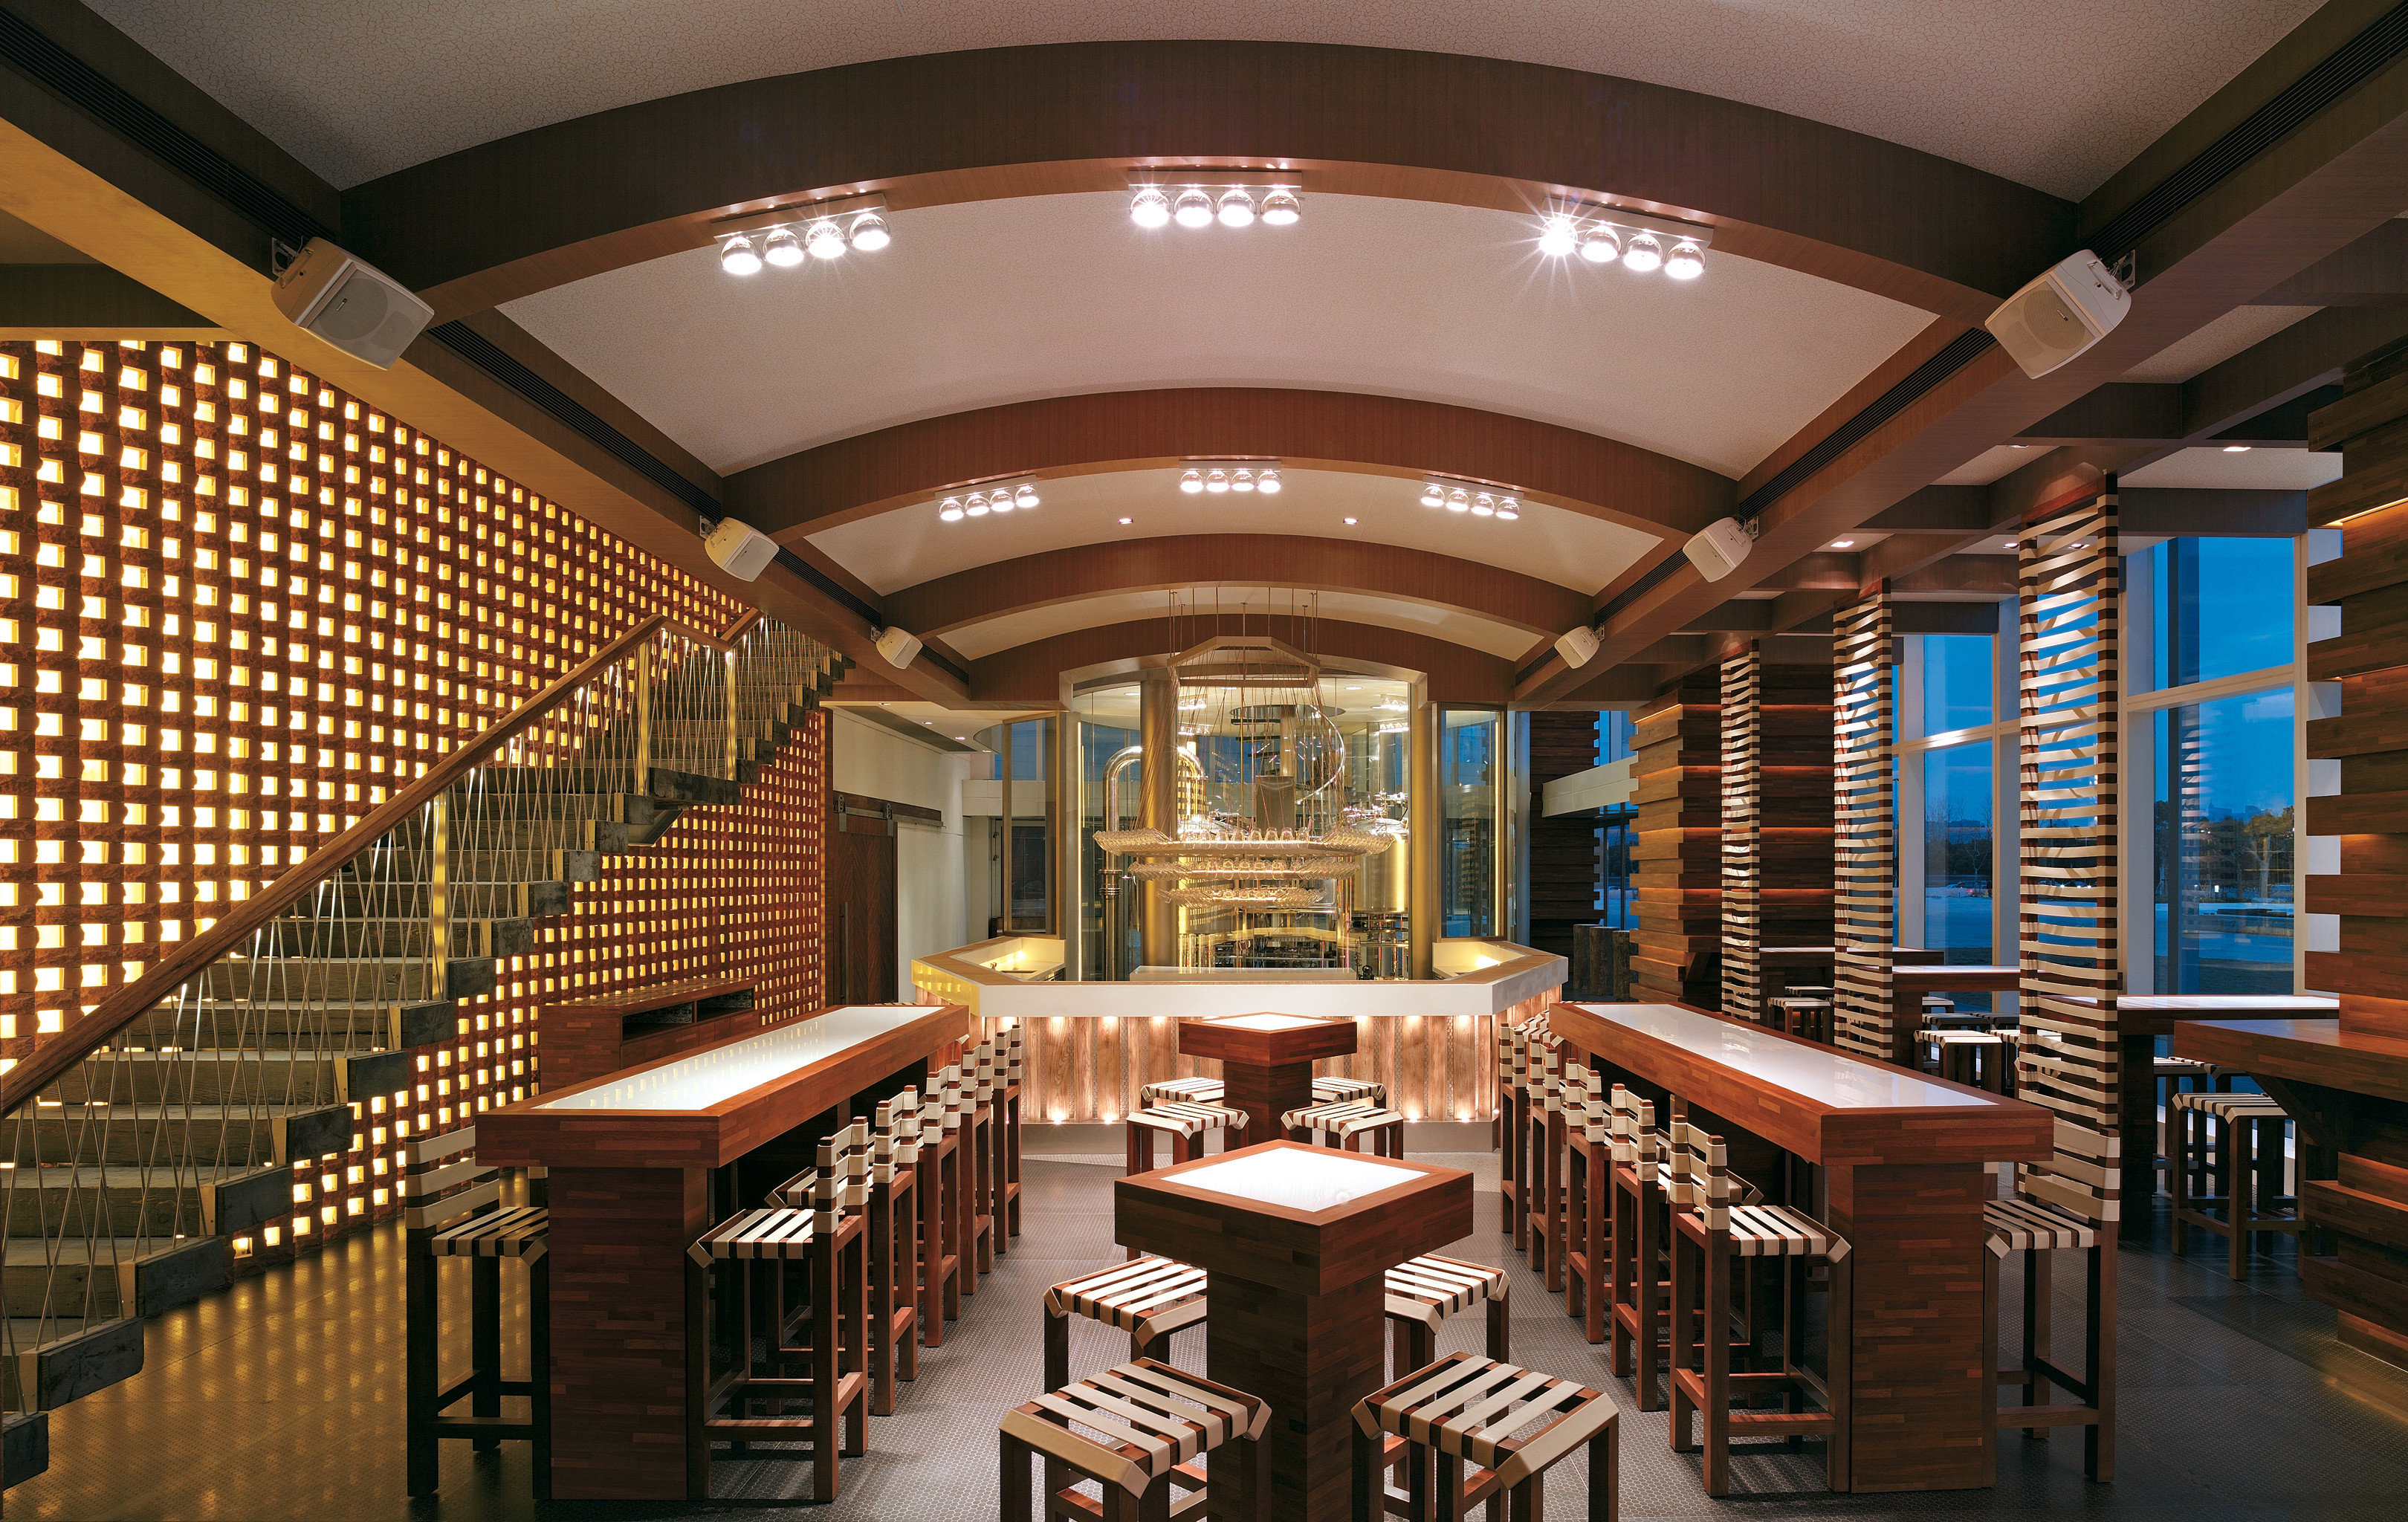 Bar Dining Drink Eat Hip Luxury library building auditorium Lobby convention center function hall conference hall